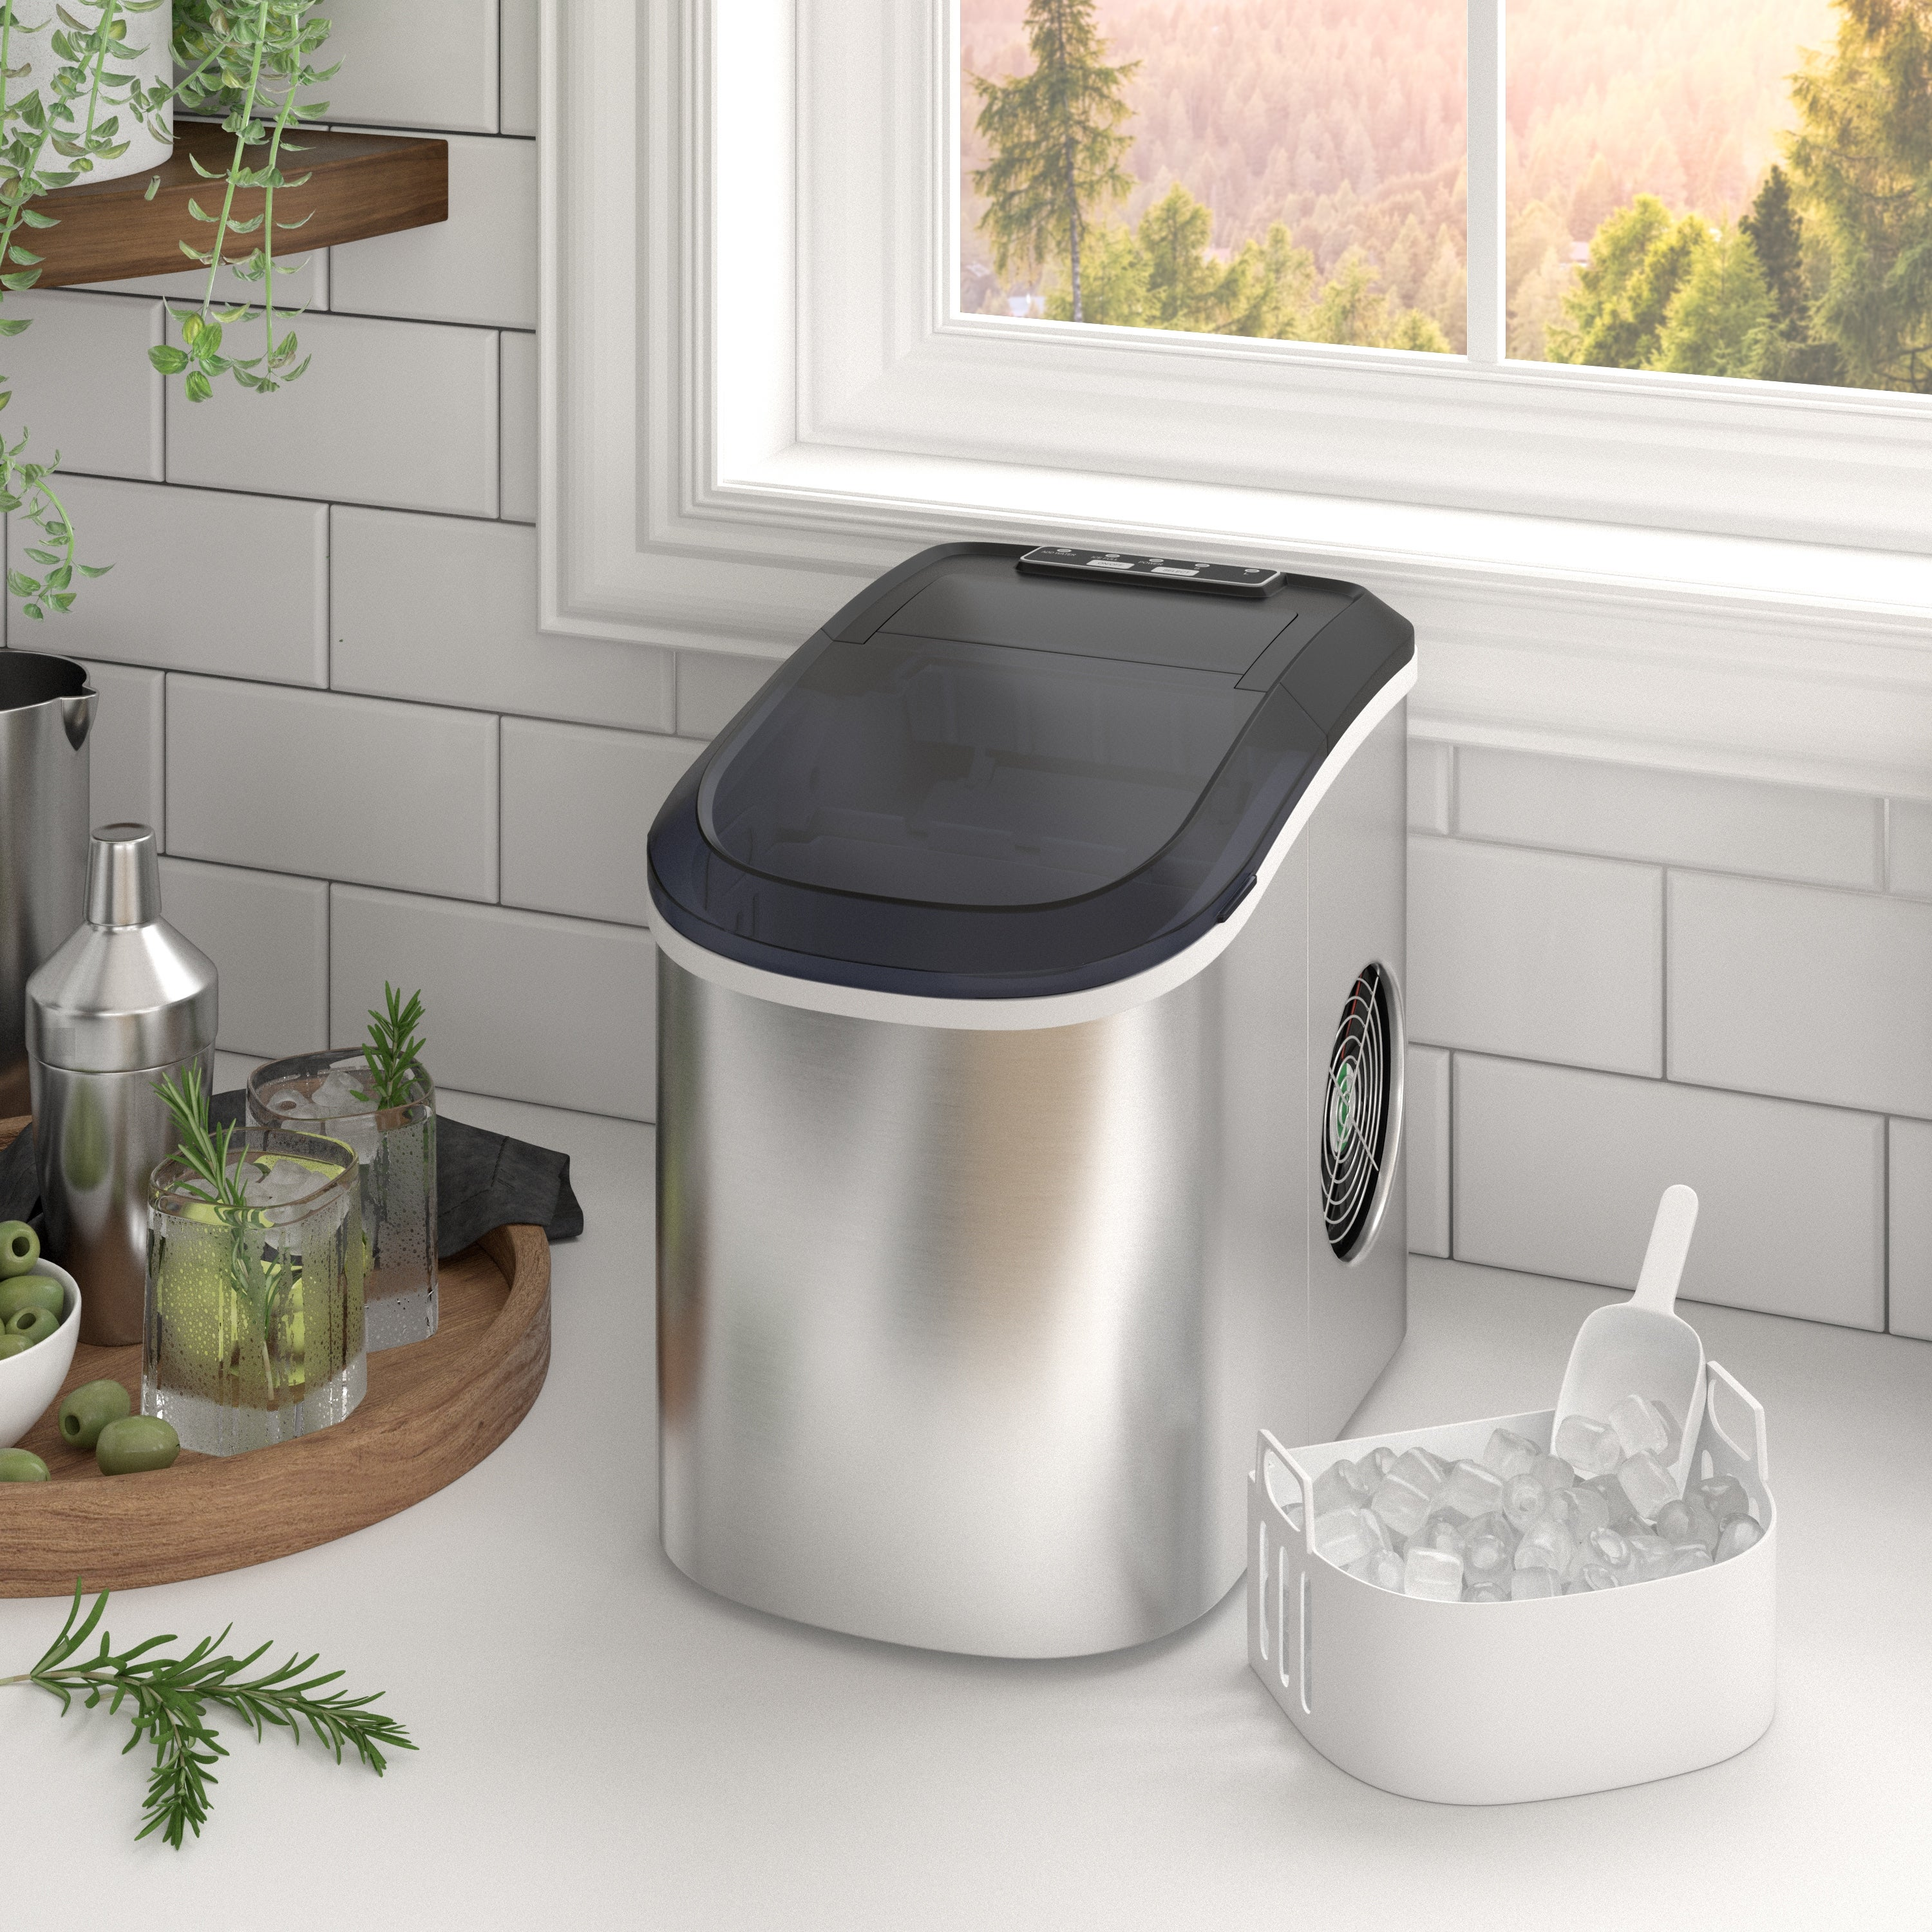 Countertop Ice Maker Machine 9 Ice Cubes Ready In 6 Mins Makes 26 Lbs Ice In 24 H Electric Portable Ice Making Machine Overstock 31636950